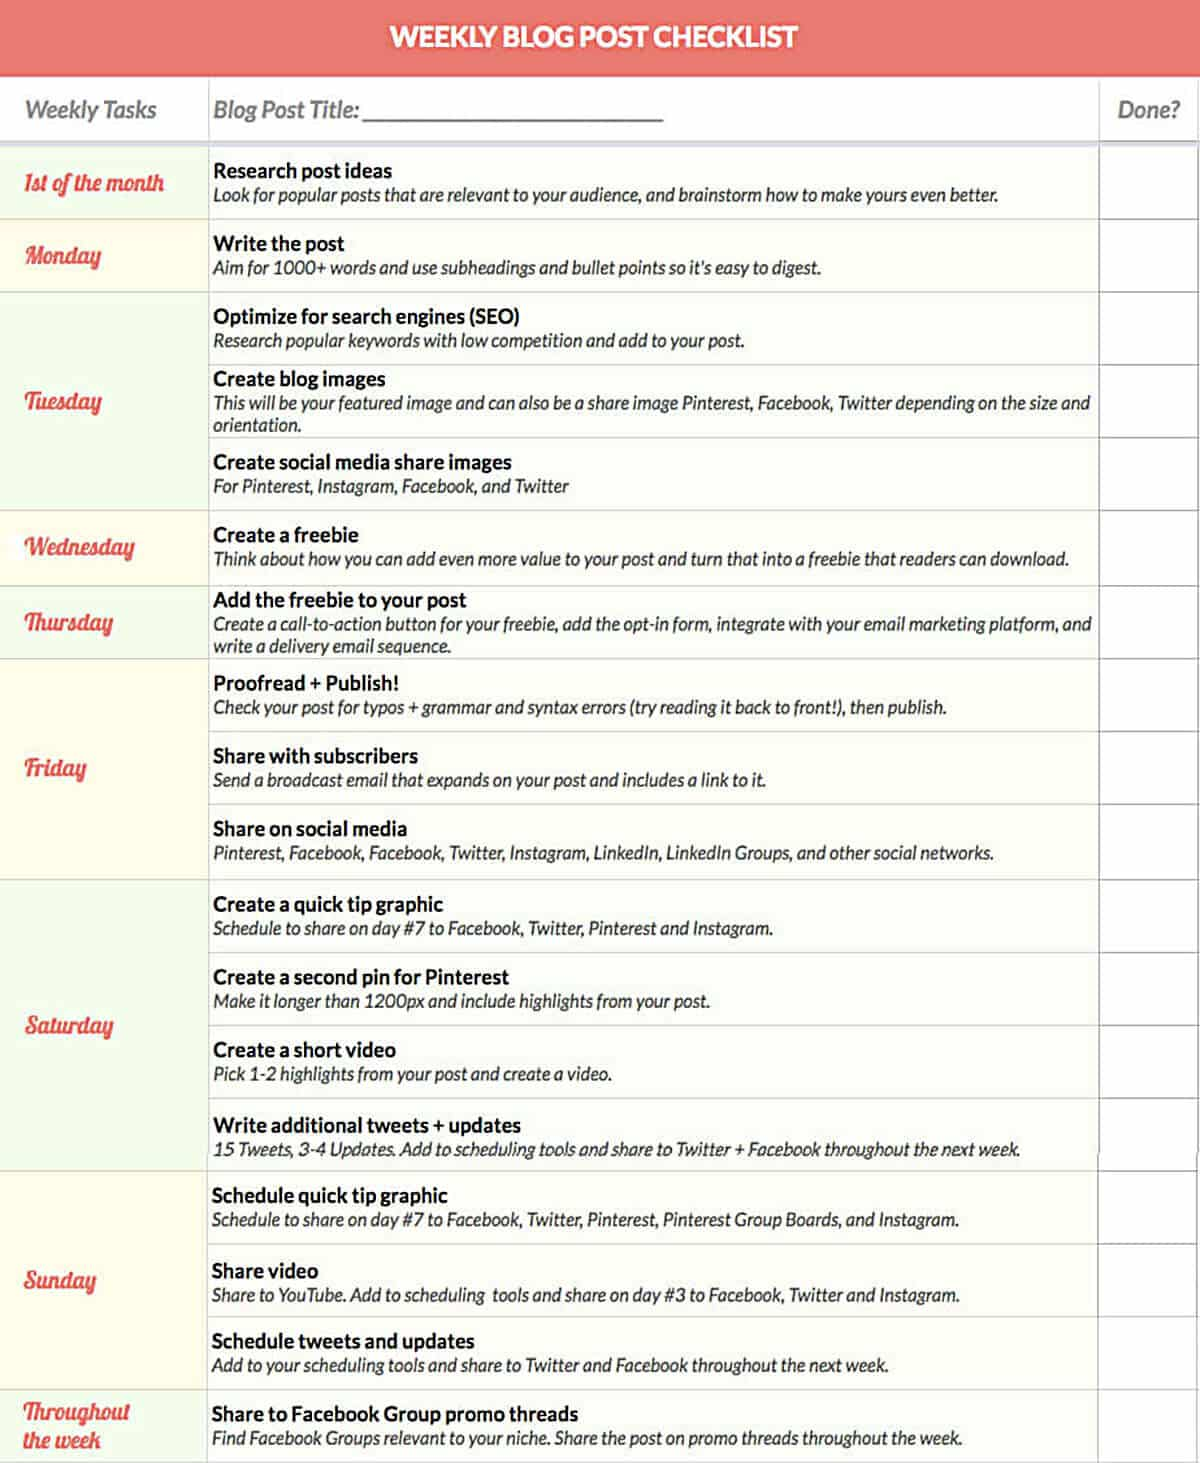 Weekly Blog Post Checklist for Social Media Marketing